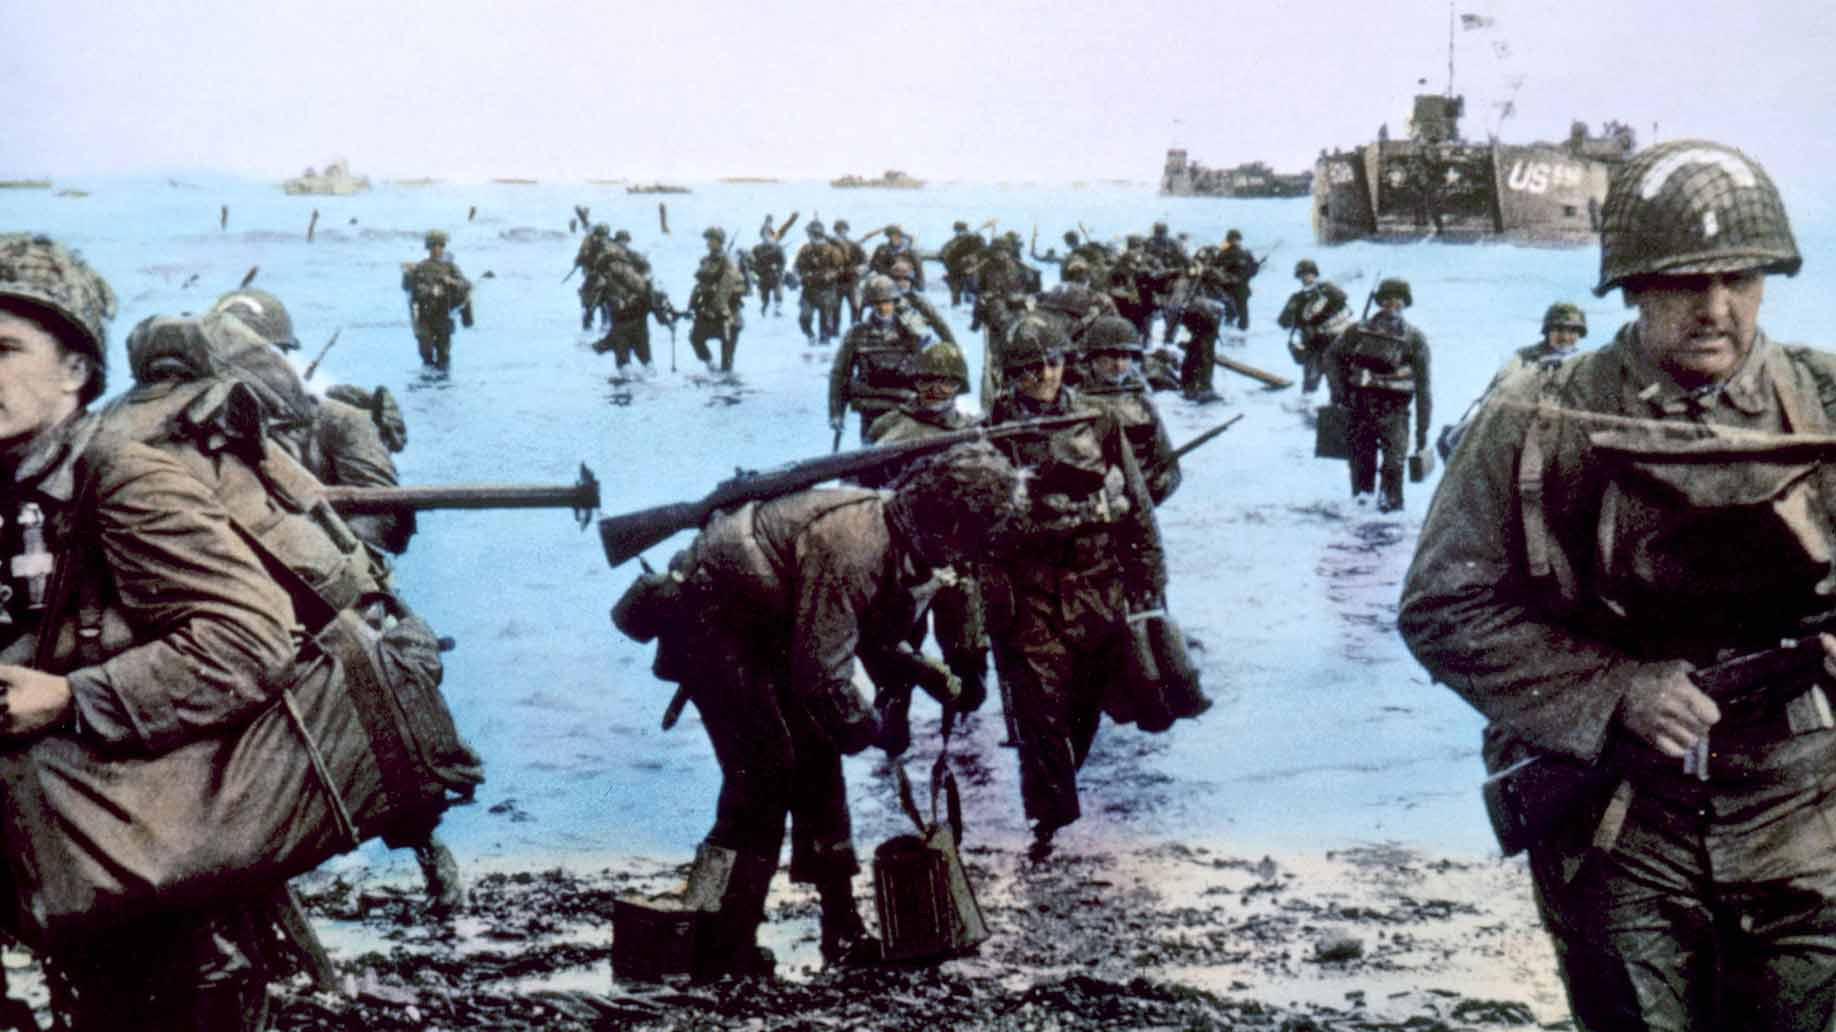 an analysis of the united states in world war two The second world war saw a more meaningful participation from the united states of america, which was then set to become the leading superpower in the post war years the rest of the essay will see a comparative analysis between these two wars.